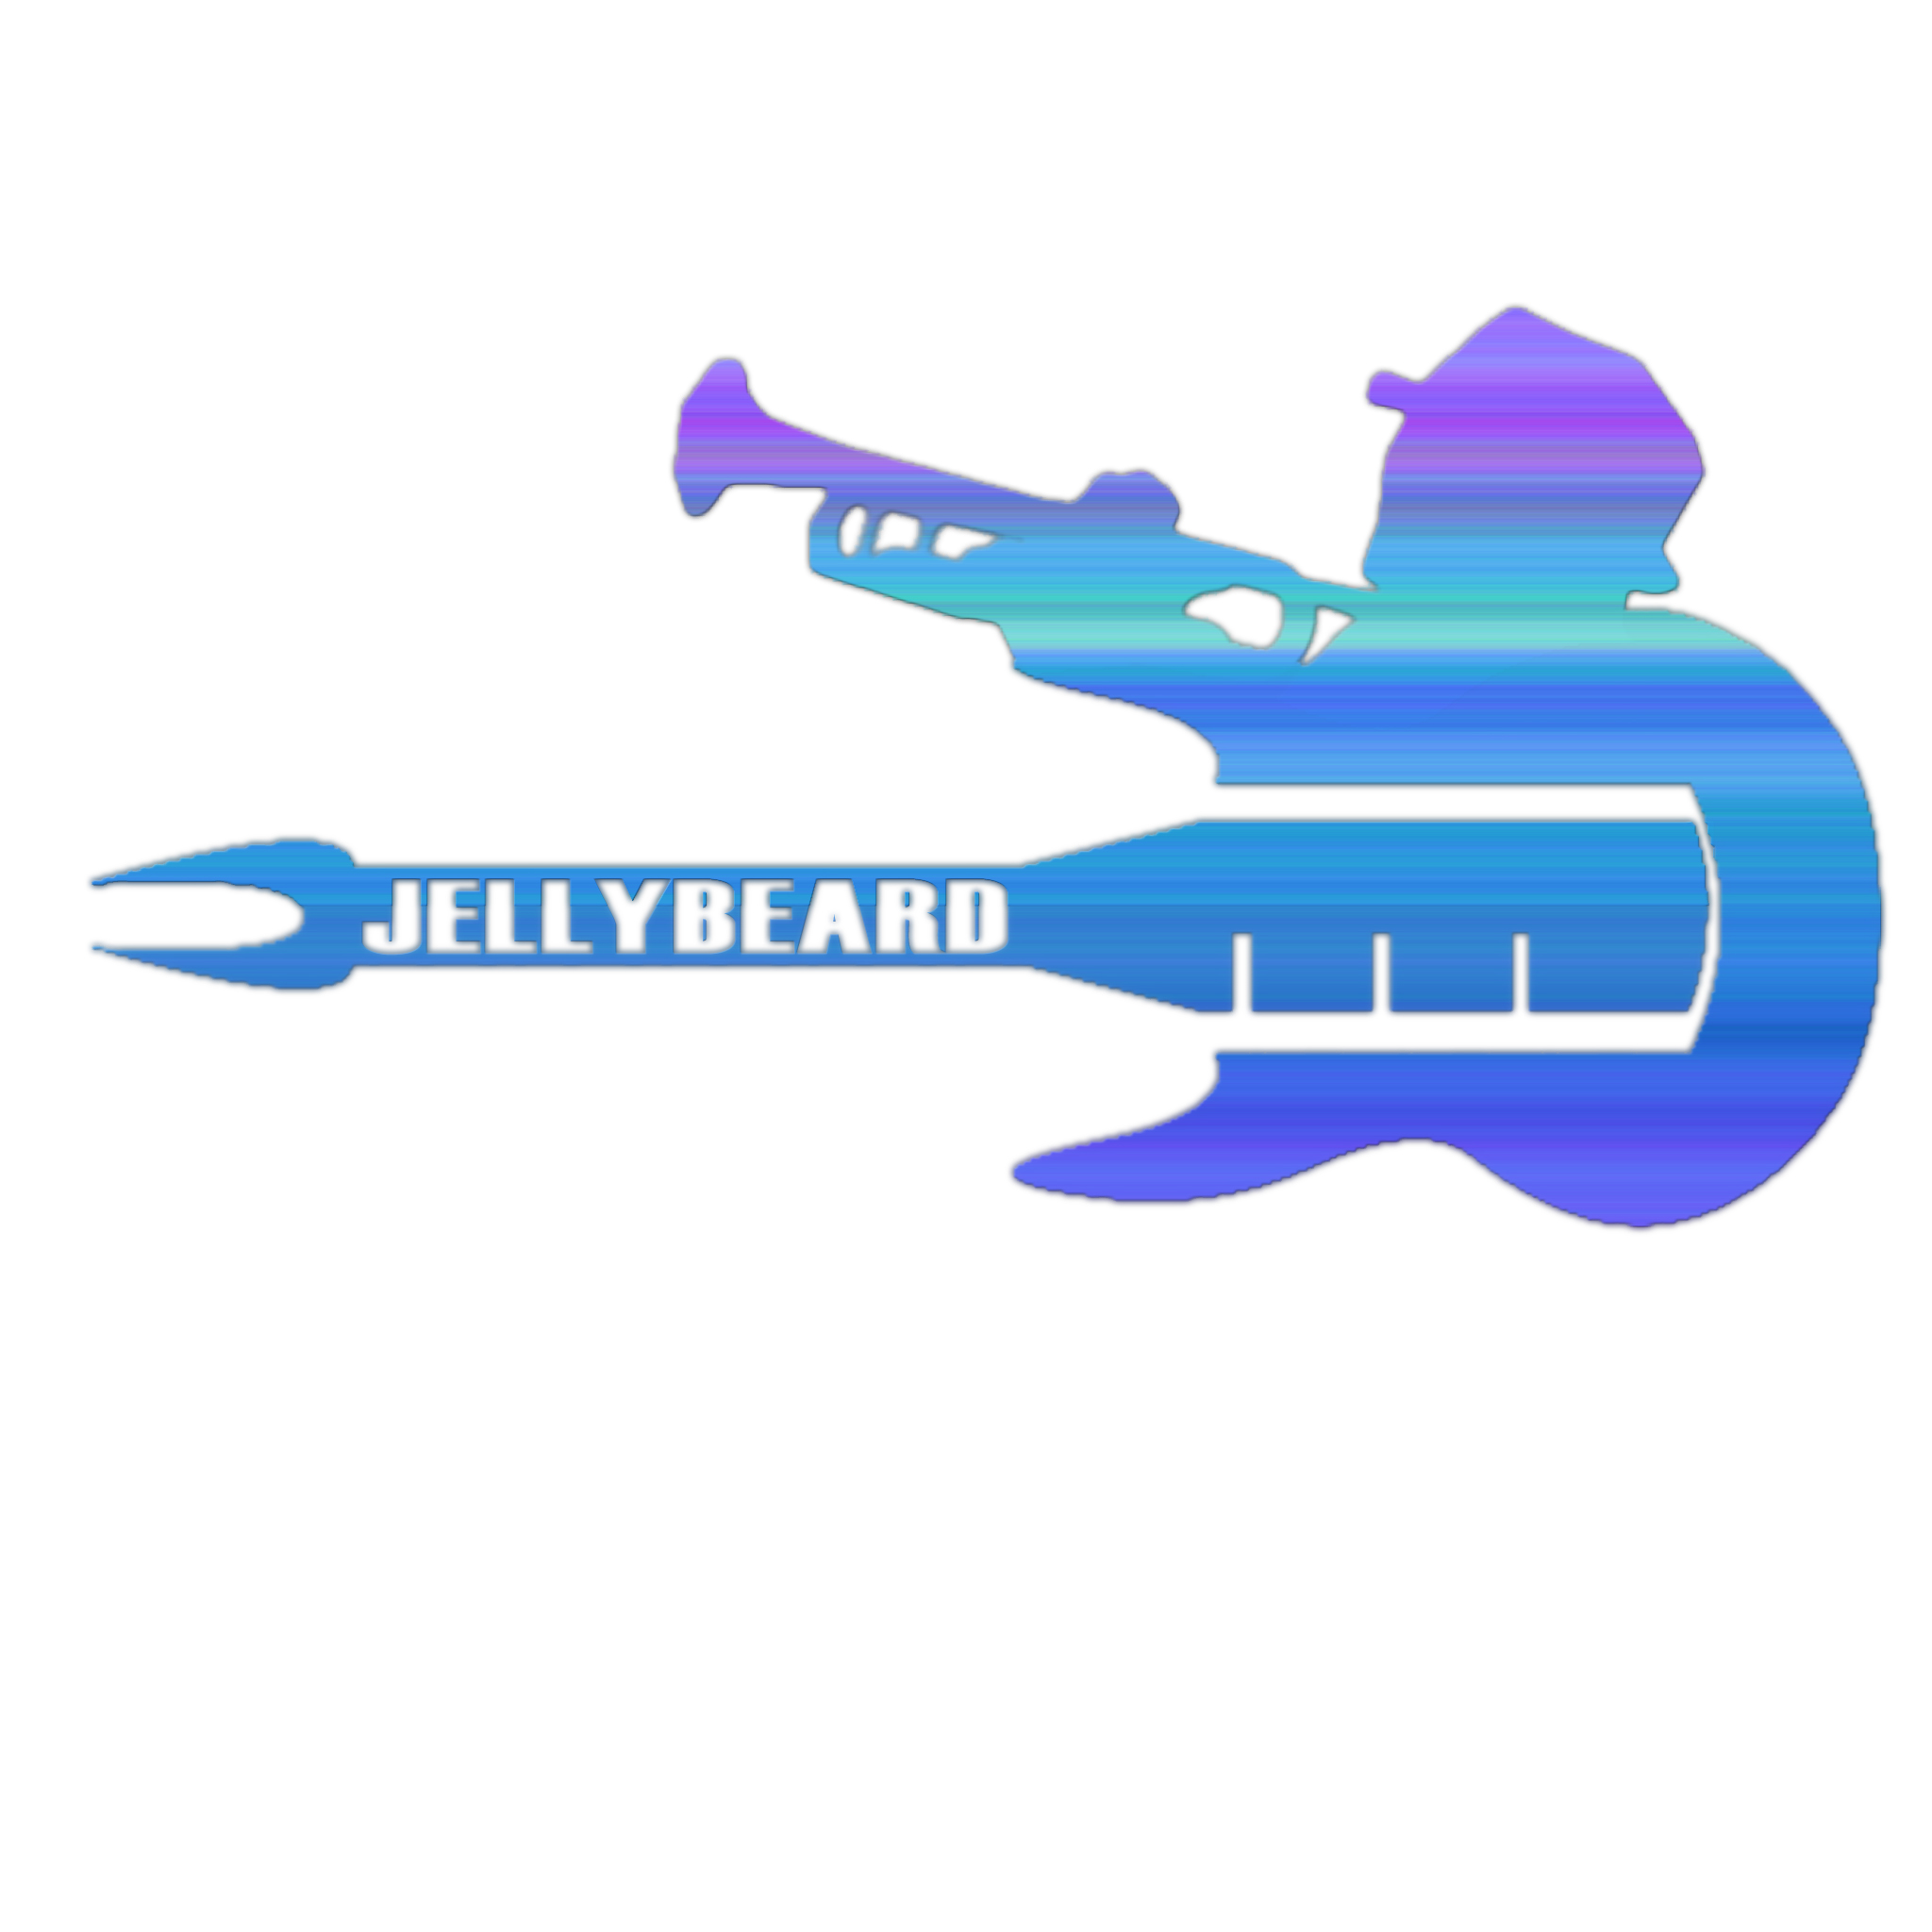 Logo Design by intentio_graphikos - Entry No. 34 in the Logo Design Contest jellybeard Logo Design.